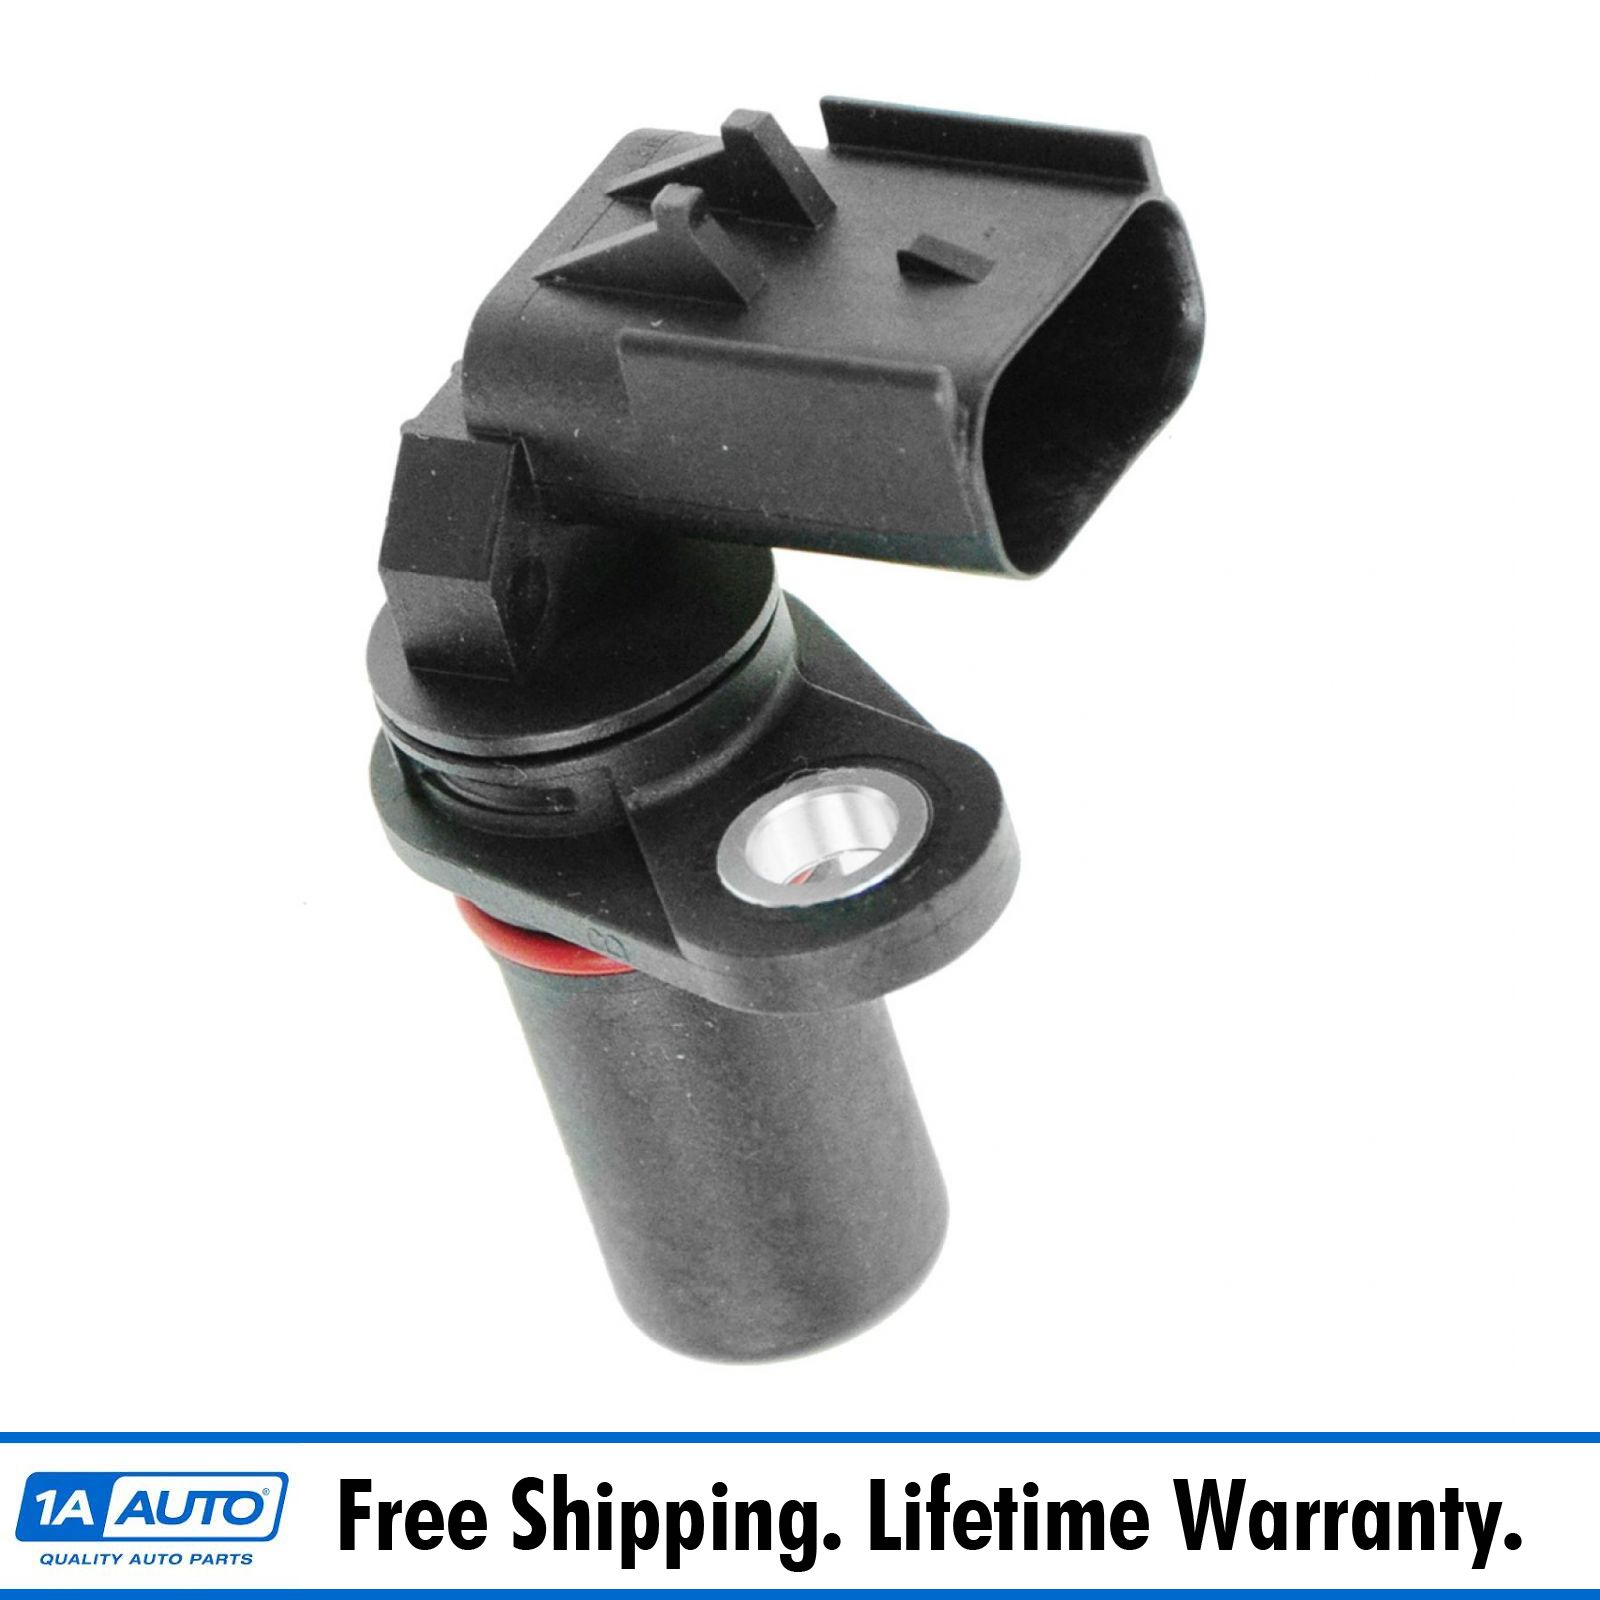 Crankshaft Position Sensor For Chrysler Sebring Dodge Neon